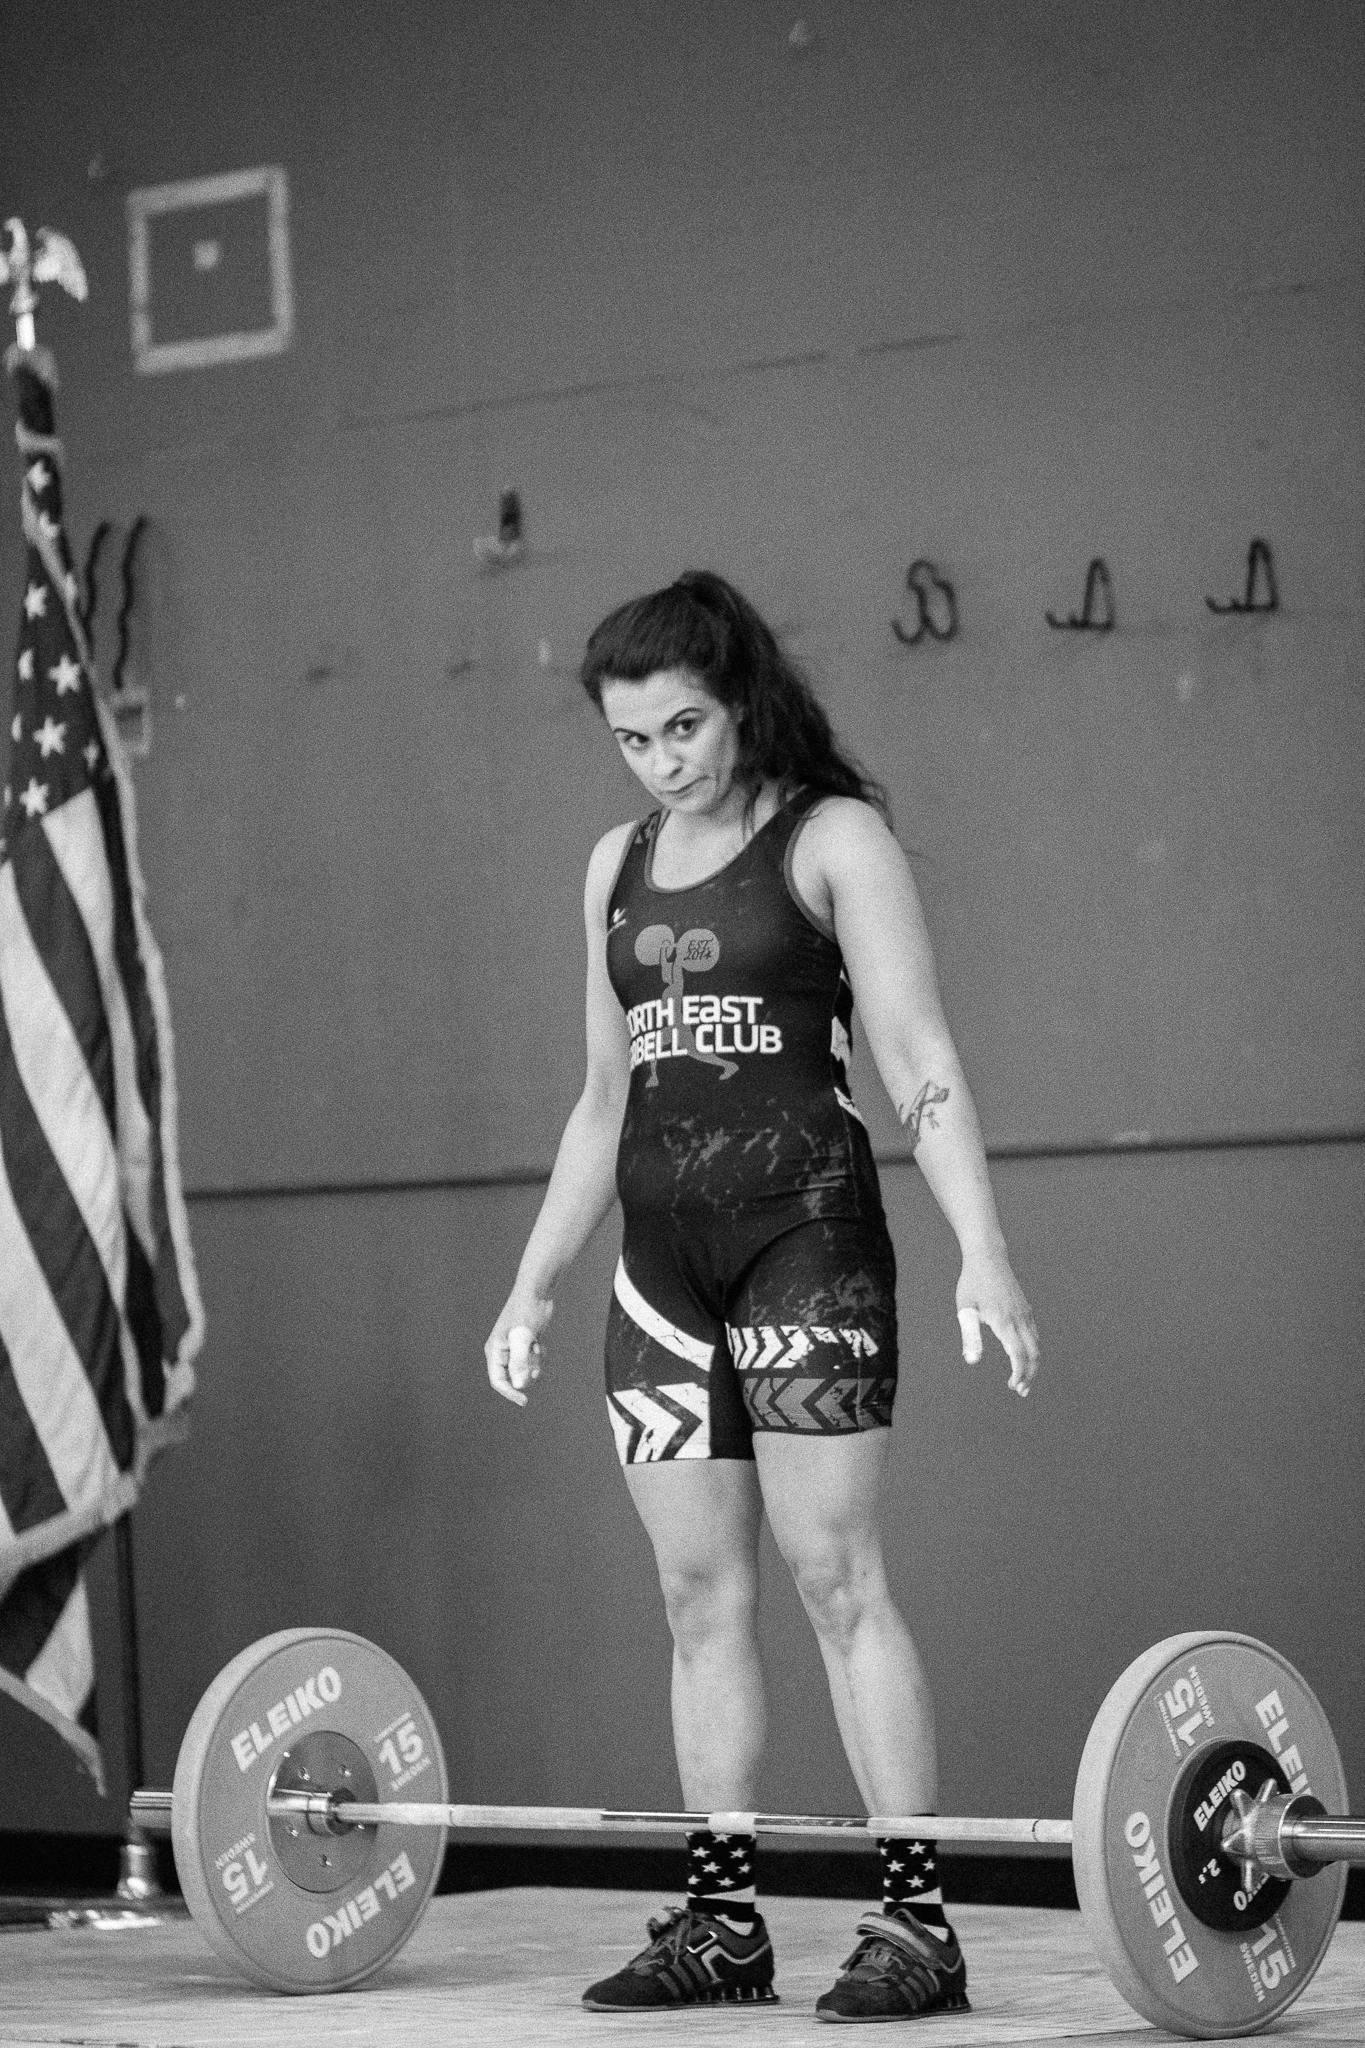 weightlifting-photography-black-white-connecticut-open-weightlifting-meet-vp (2 of 7).jpg